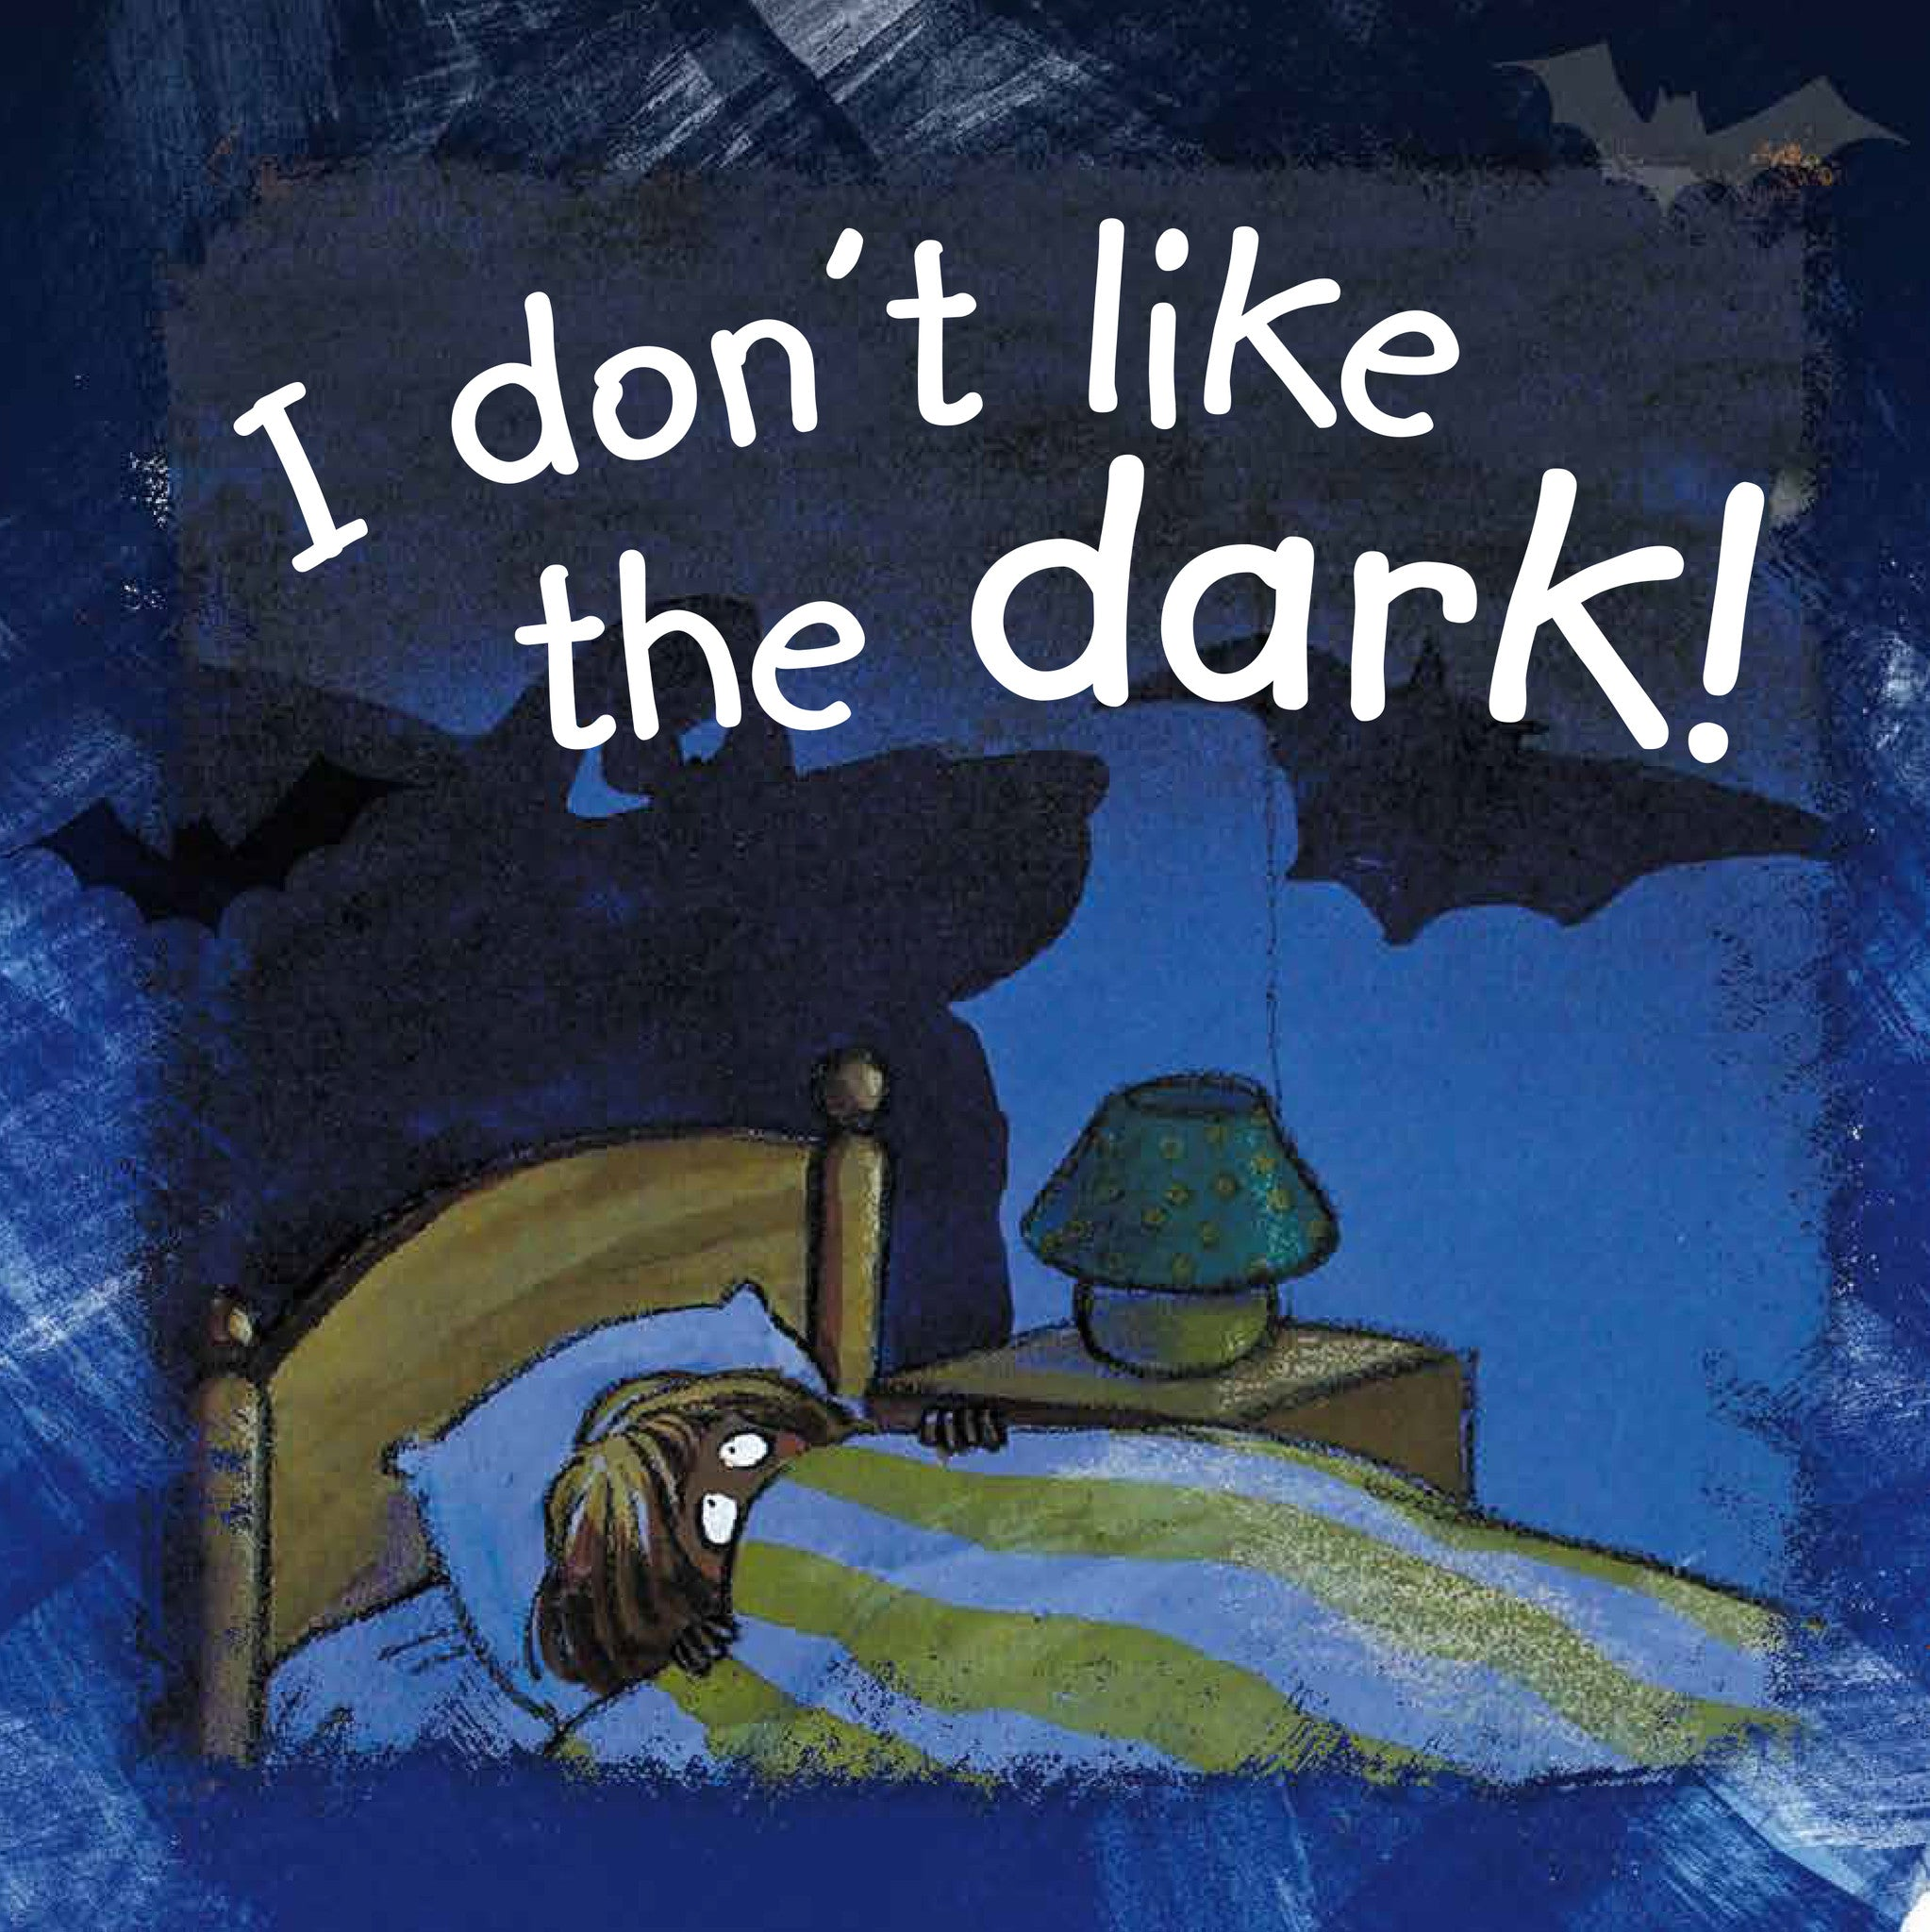 I don't like the dark!